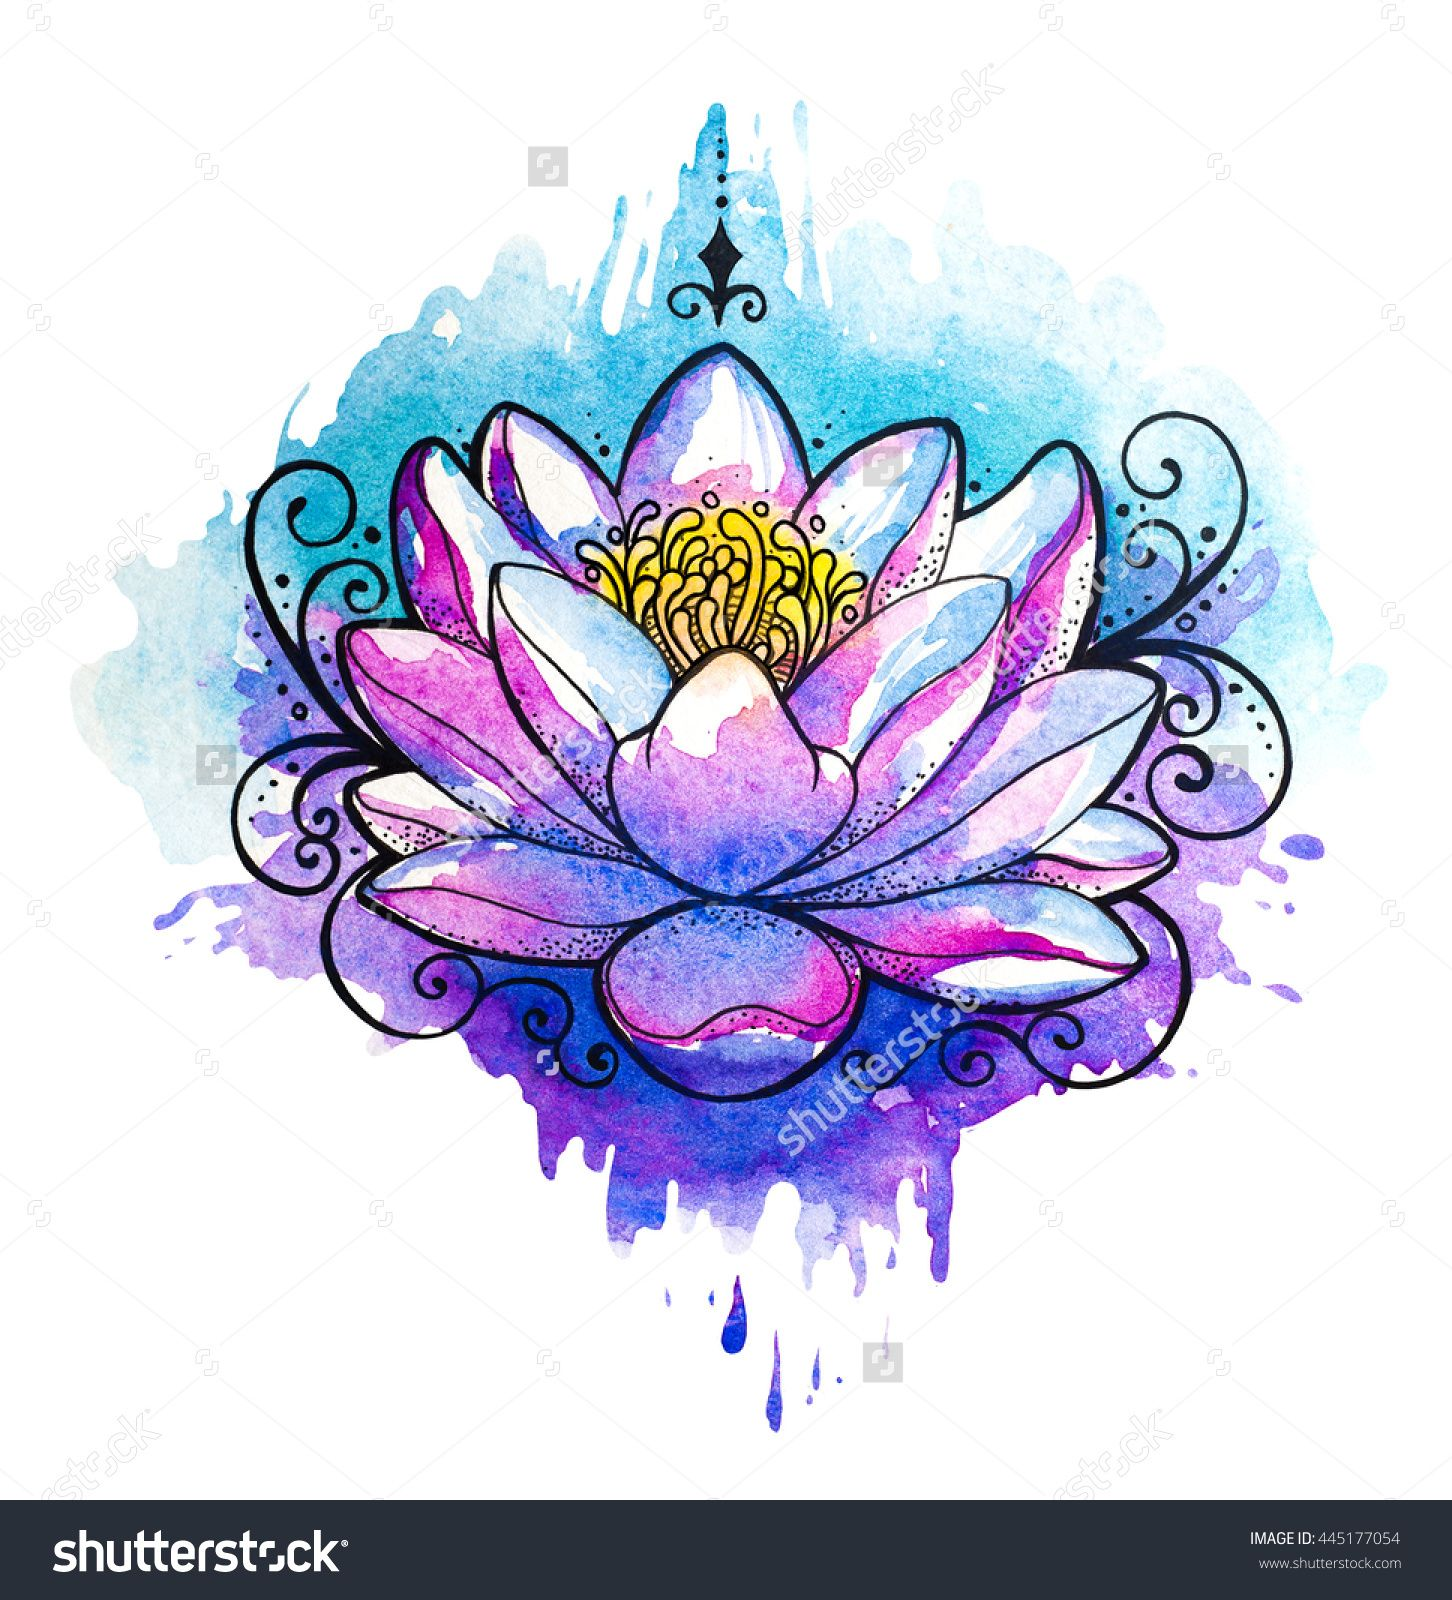 Image Result For Rainbow Butterfly Tattoos Flower Illustration Aquarius Art Watercolor Tattoo